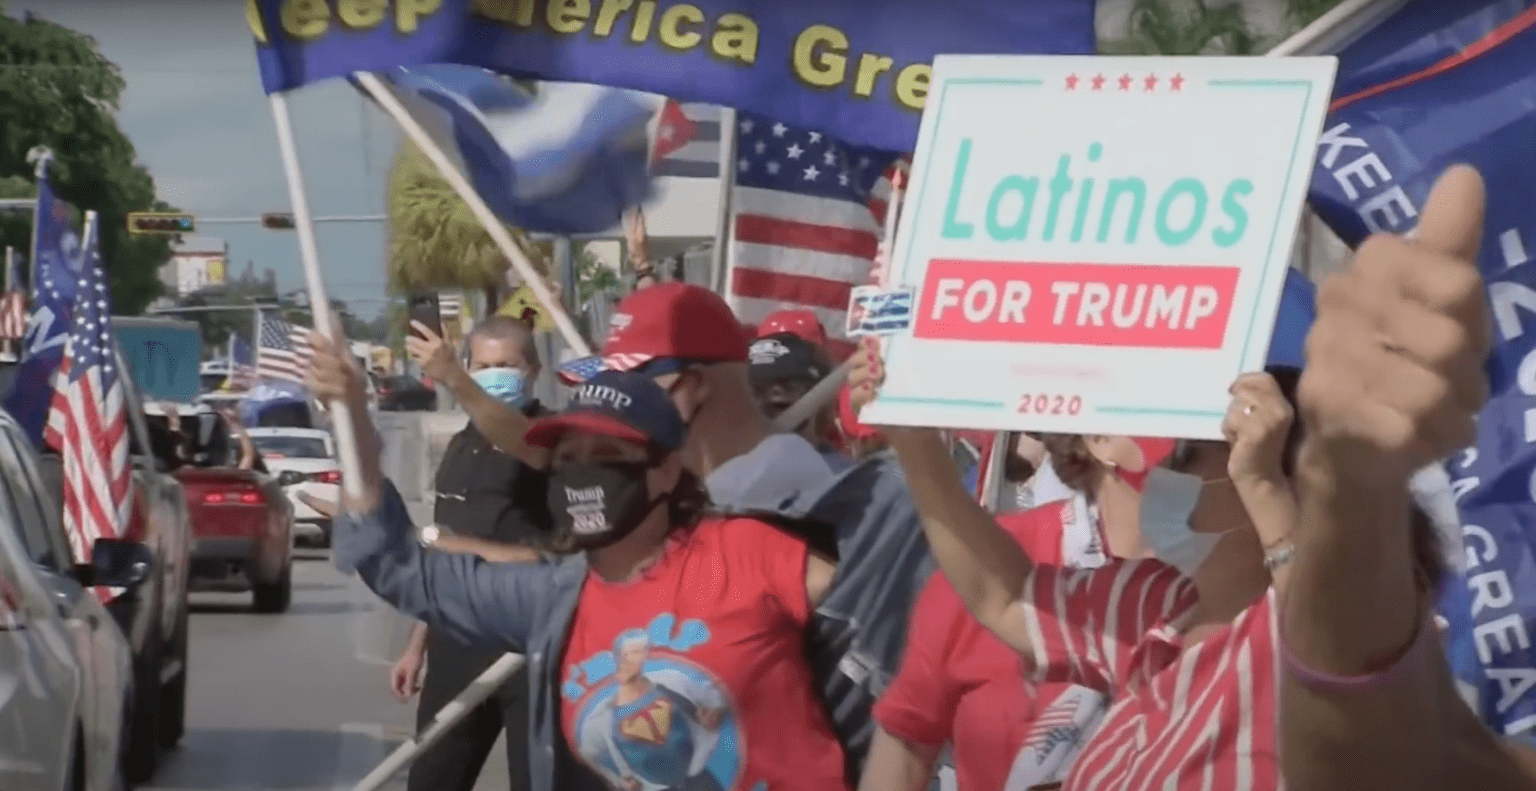 Where's the media? 30,000 vehicles show up for Latinos for Trump parade in Miami